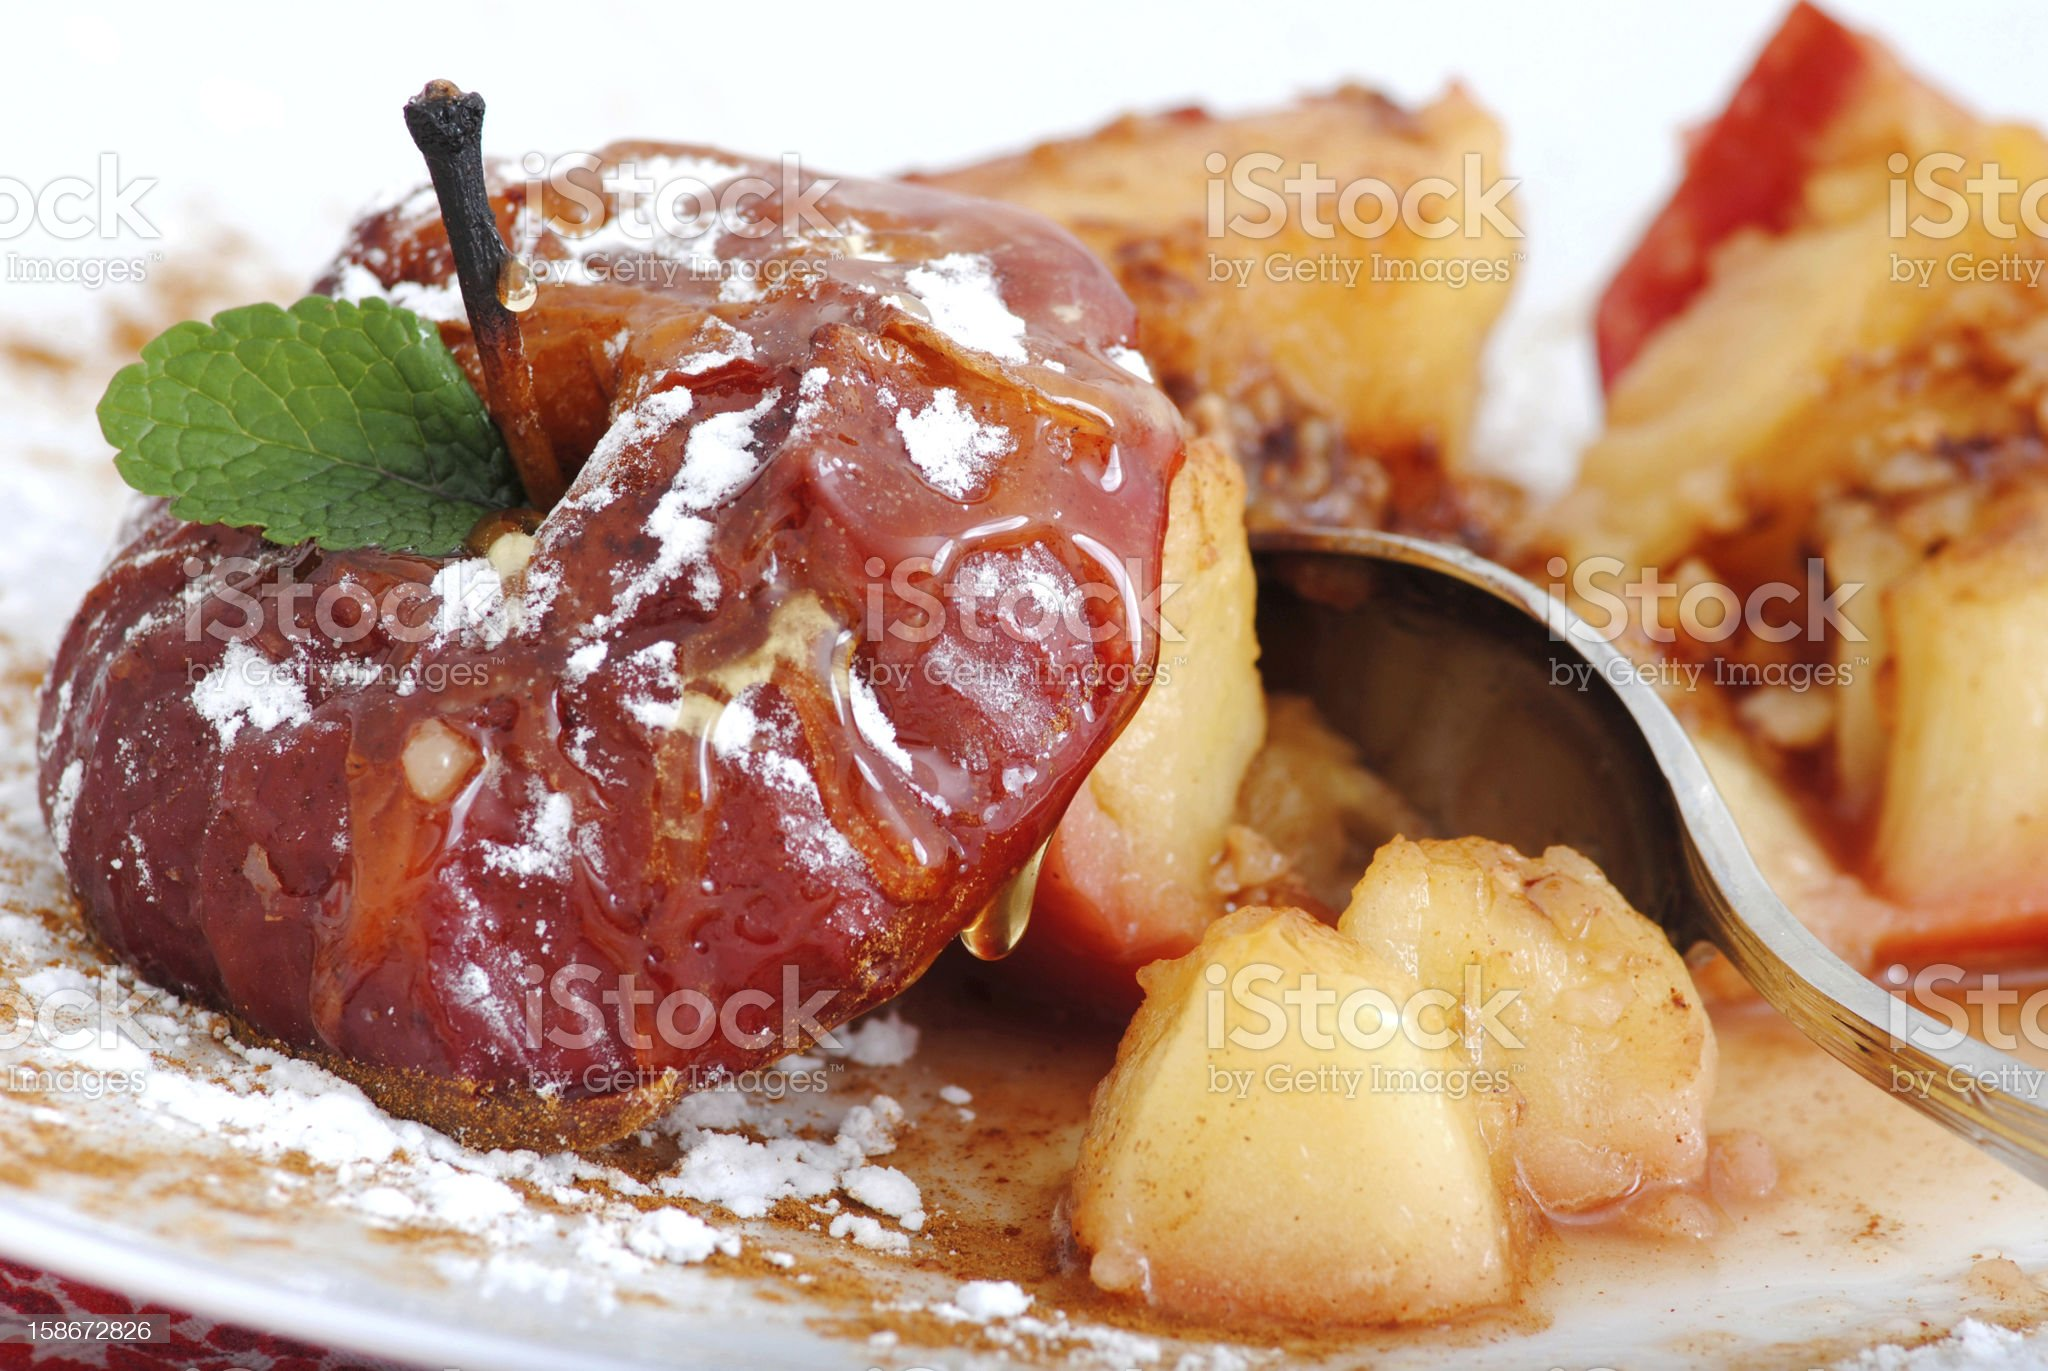 Apples baked desserts royalty-free stock photo